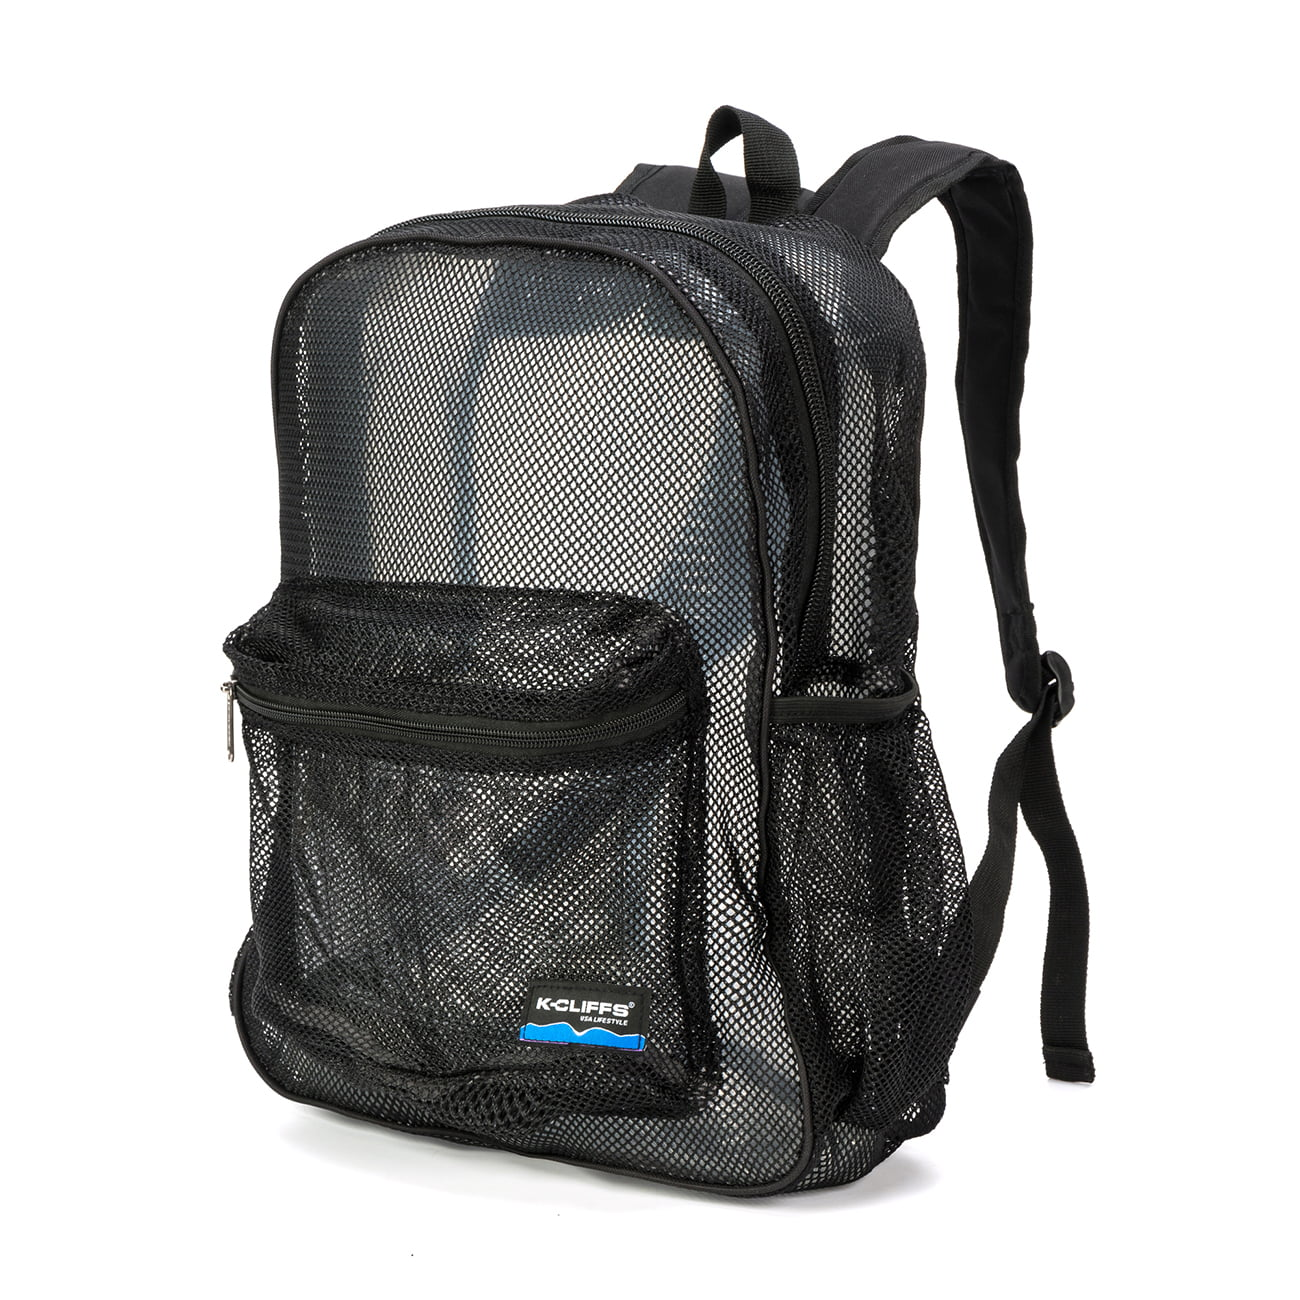 Mesh Backpack Heavy Duty Student Net Bookbag Quality Simple Netting School Bag Security See Through Daypack Black by K-Cliffs